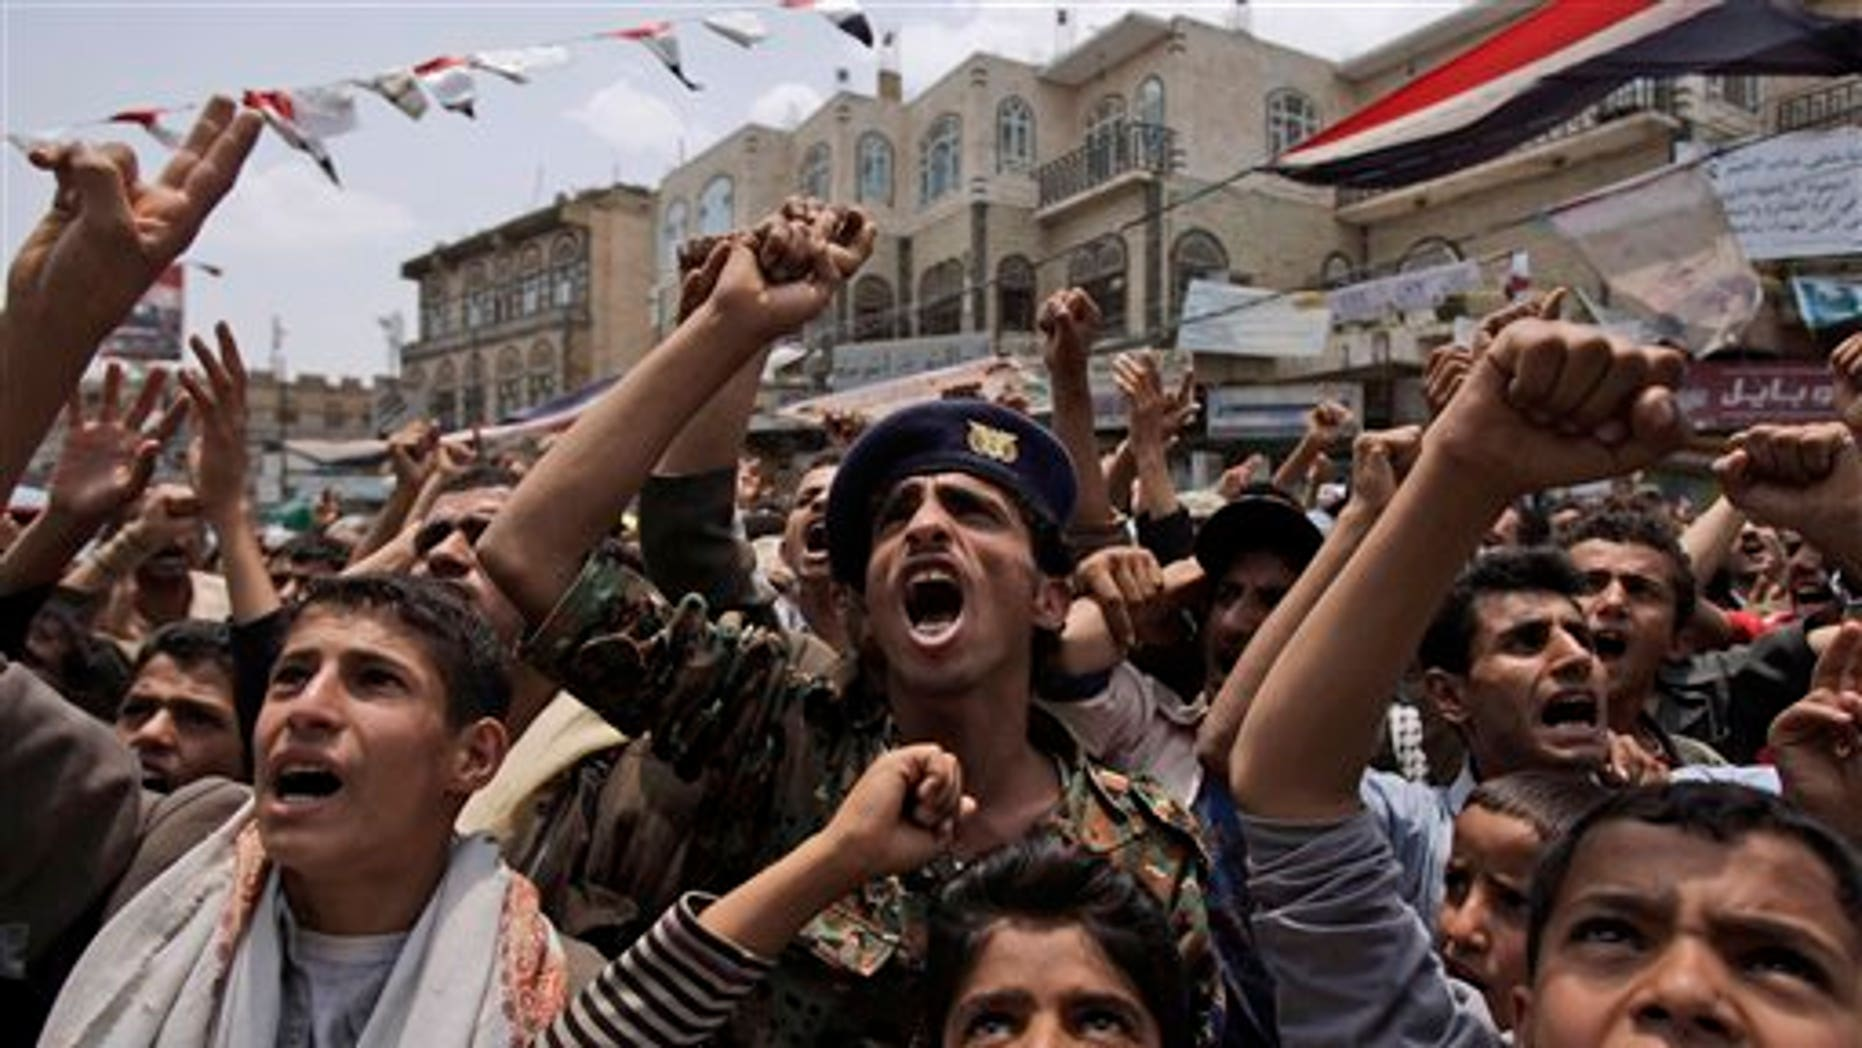 June 29: Anti-government protestors, shout slogans during a demonstration demanding the resignation of Yemeni President Ali Abdullah Saleh, in Sanaa, Yemen. Yemeni government warplanes and artillery pounded several villages of anti-government tribes north of the capital on Tuesday, killing at least three people, a senior tribal leader said.